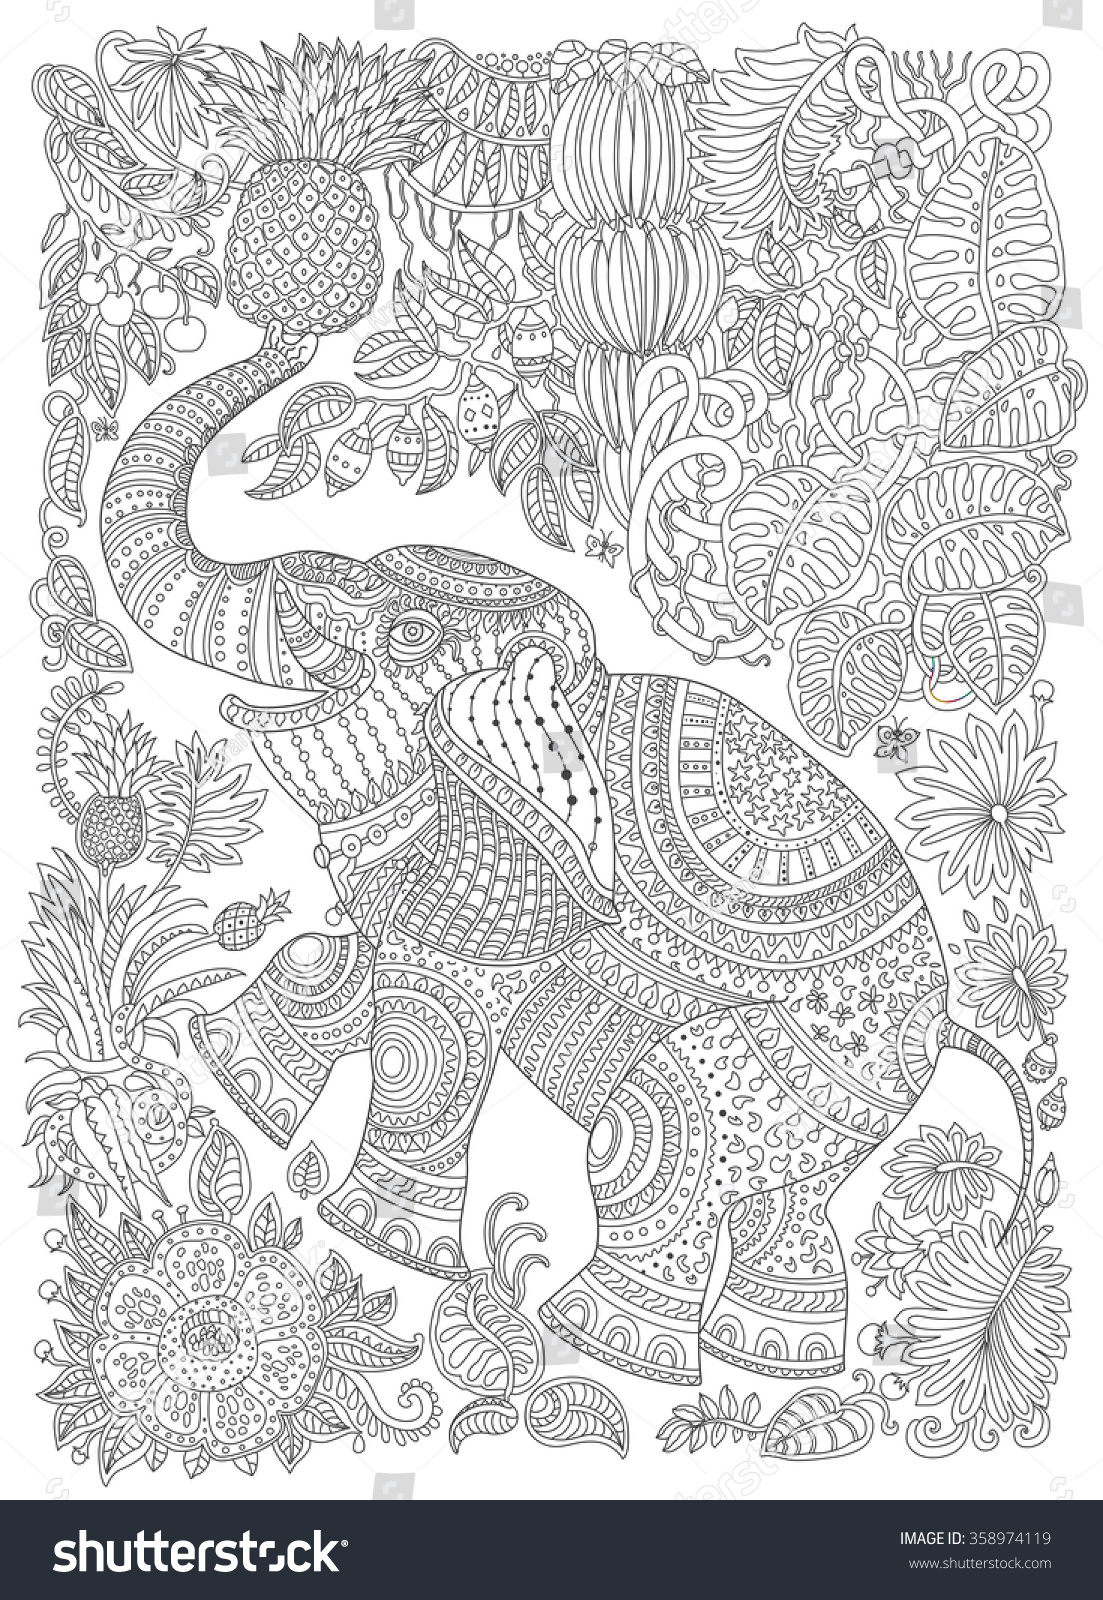 vector decorative fantasy stylized ornate elephant silhouette zen tangle fantastic flowers fruits butterfly